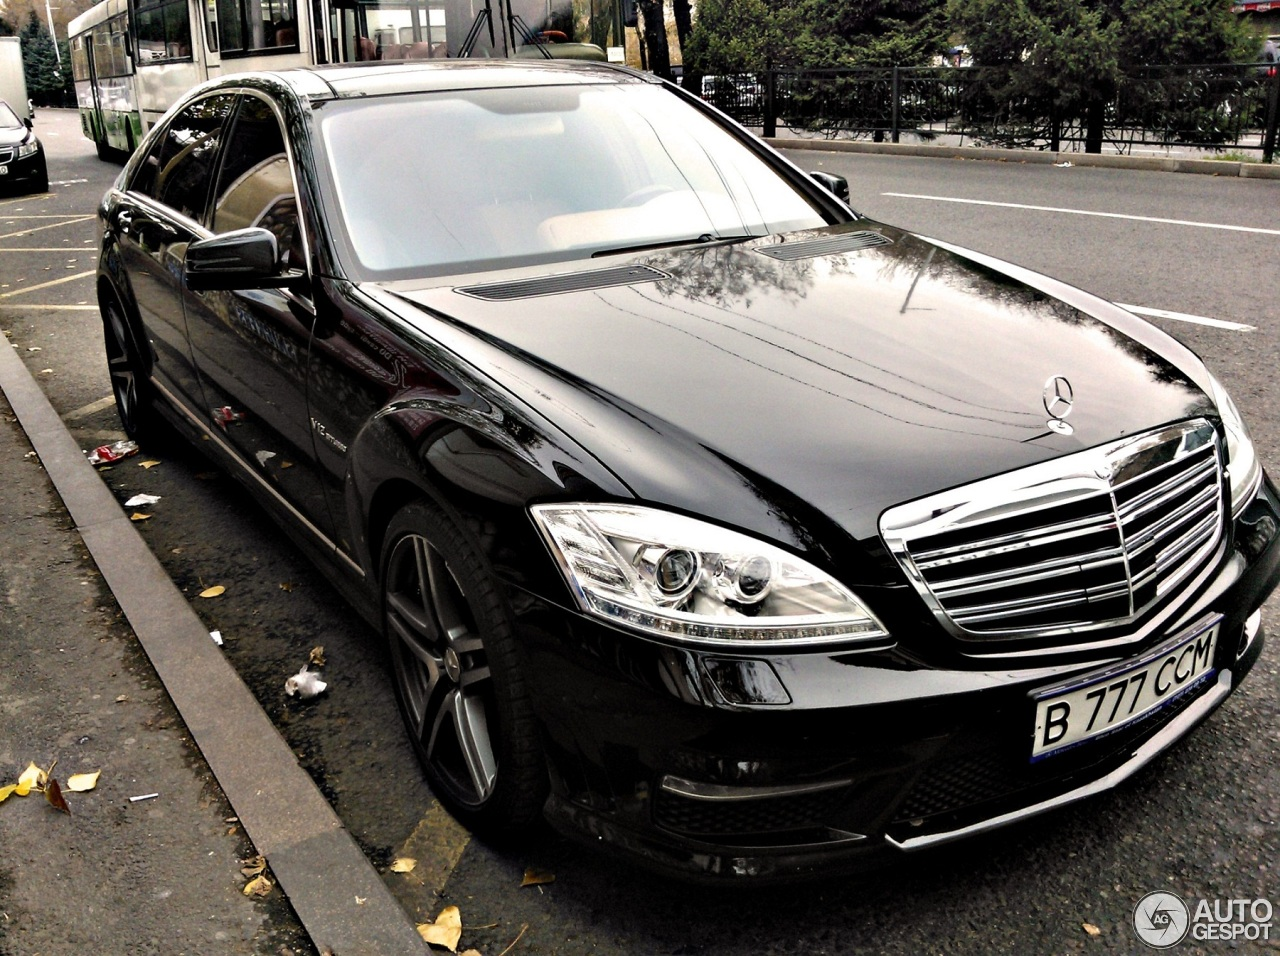 Mercedes benz s 65 amg v221 2010 18 december 2012 for Mercedes benz s class amg 2010